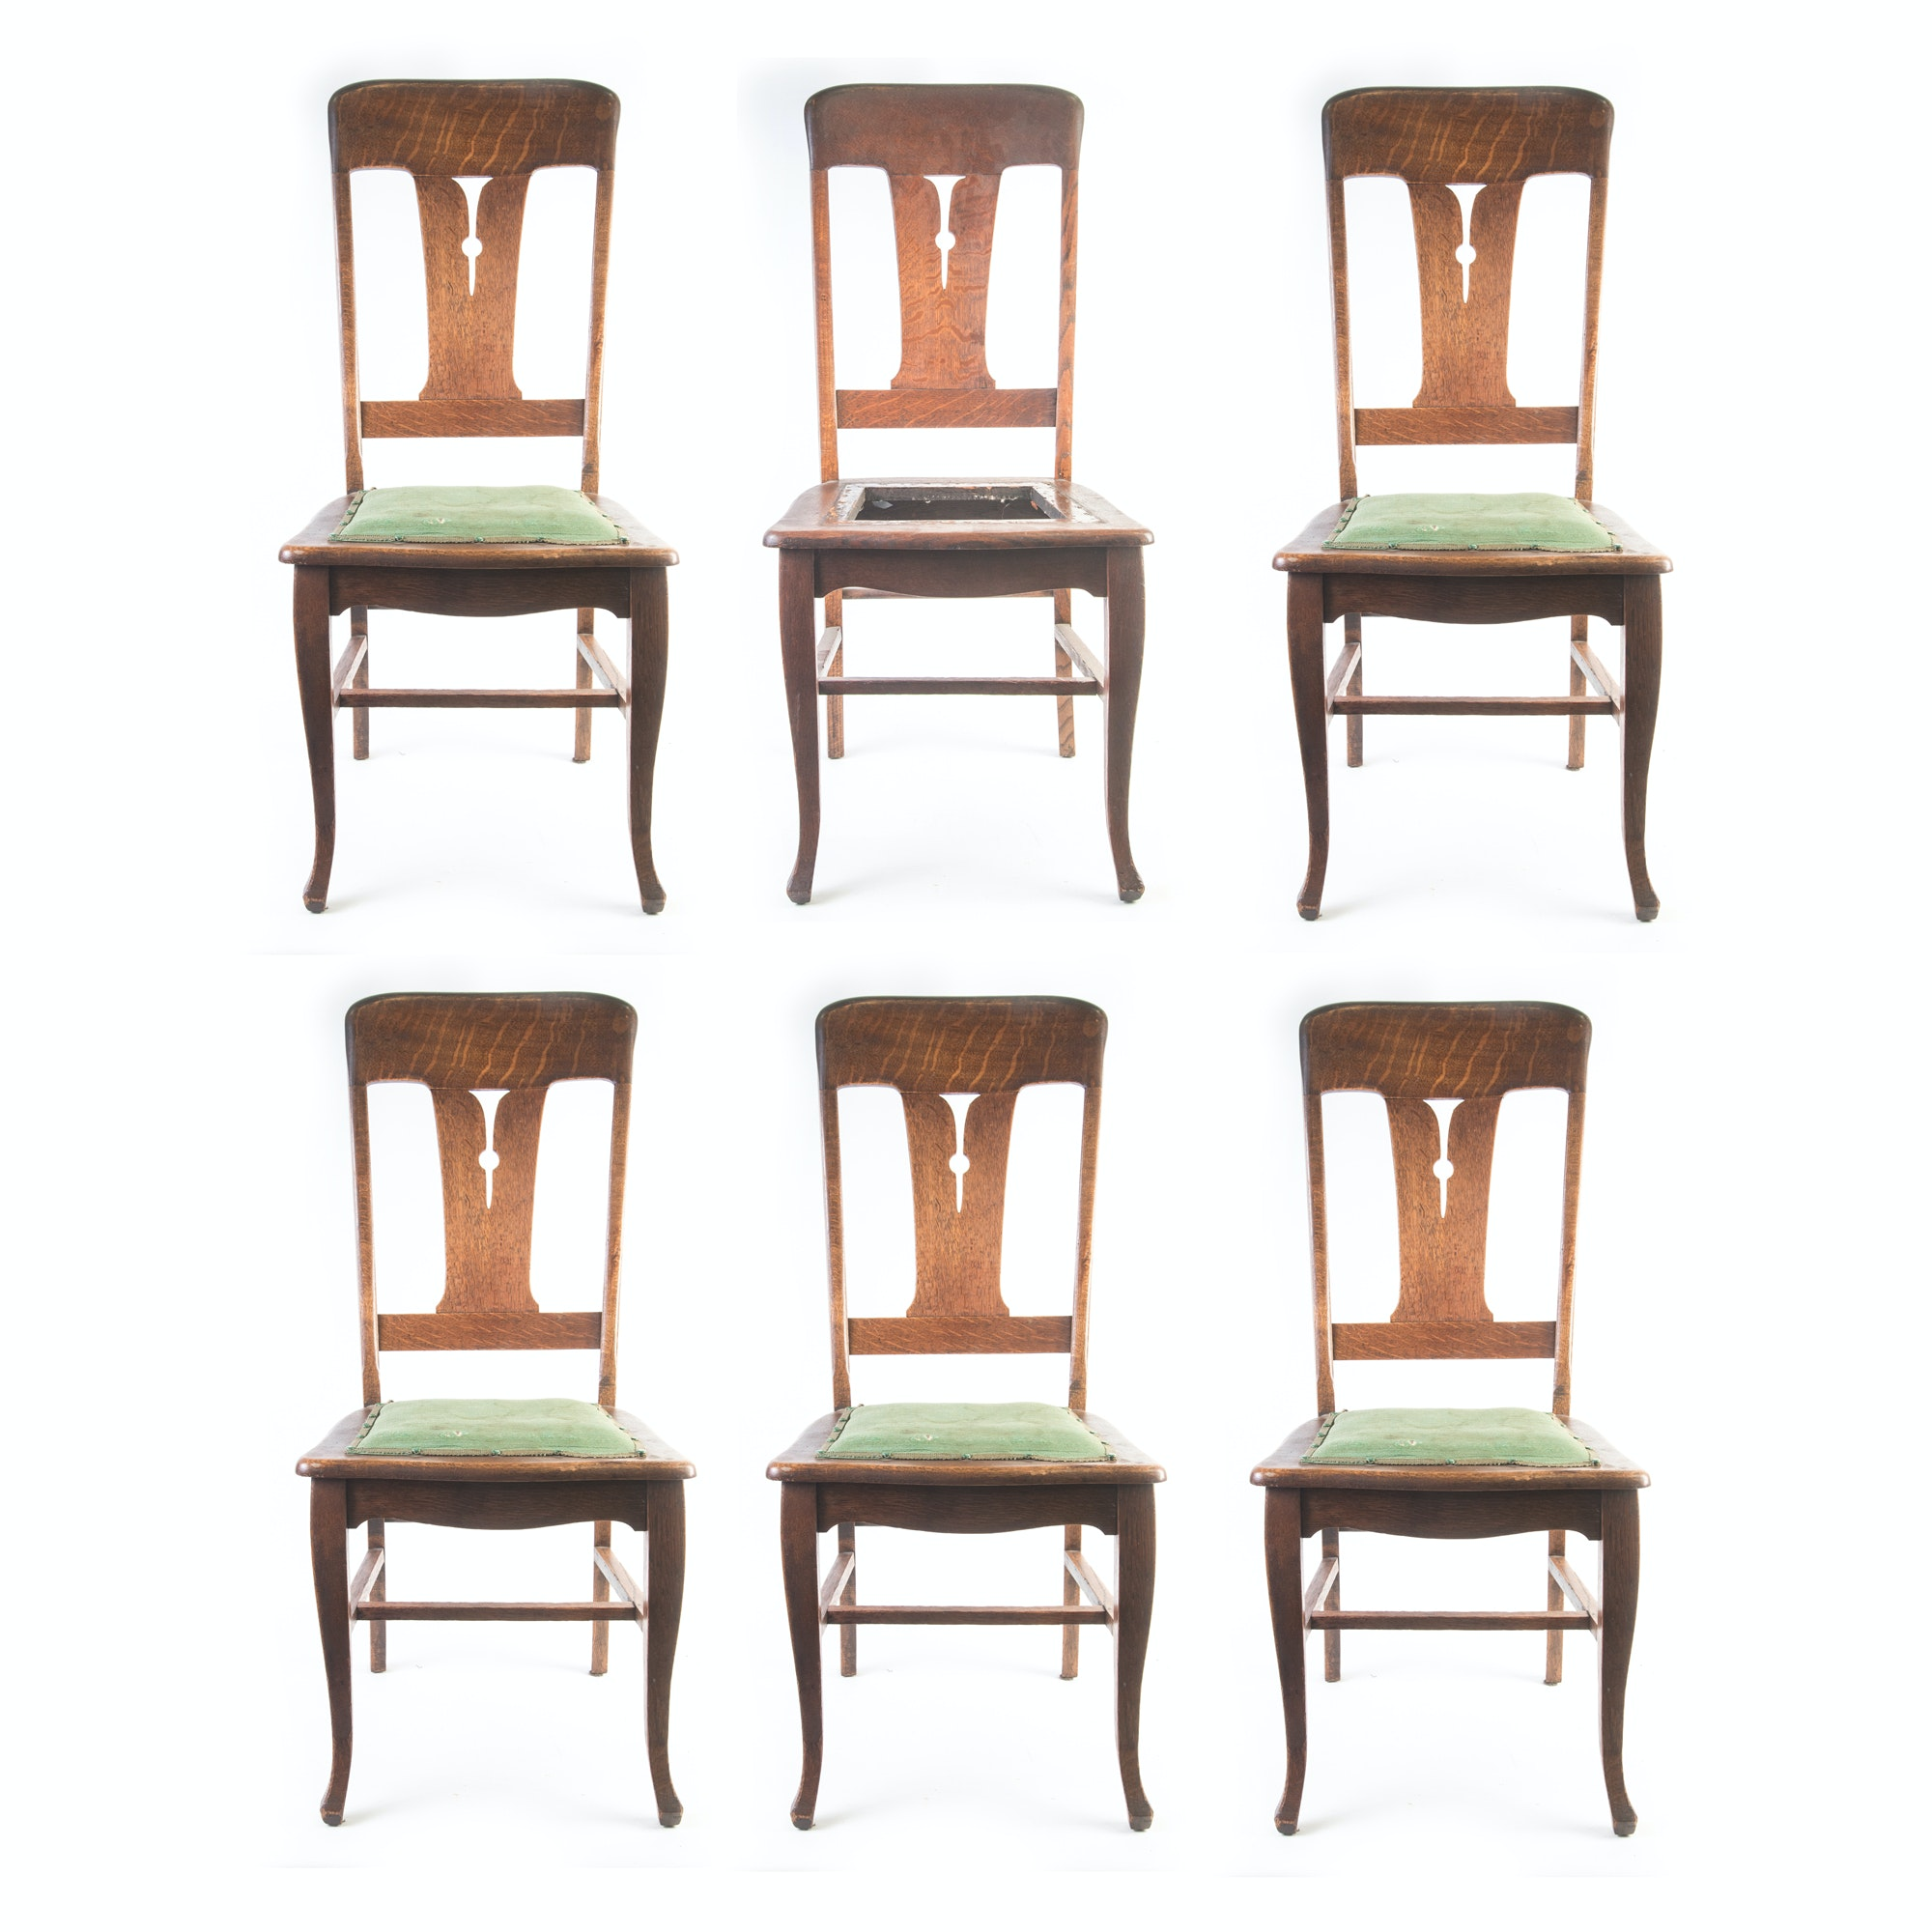 American Oak Transitional Arts & Crafts Style Dining Chairs circa 1910